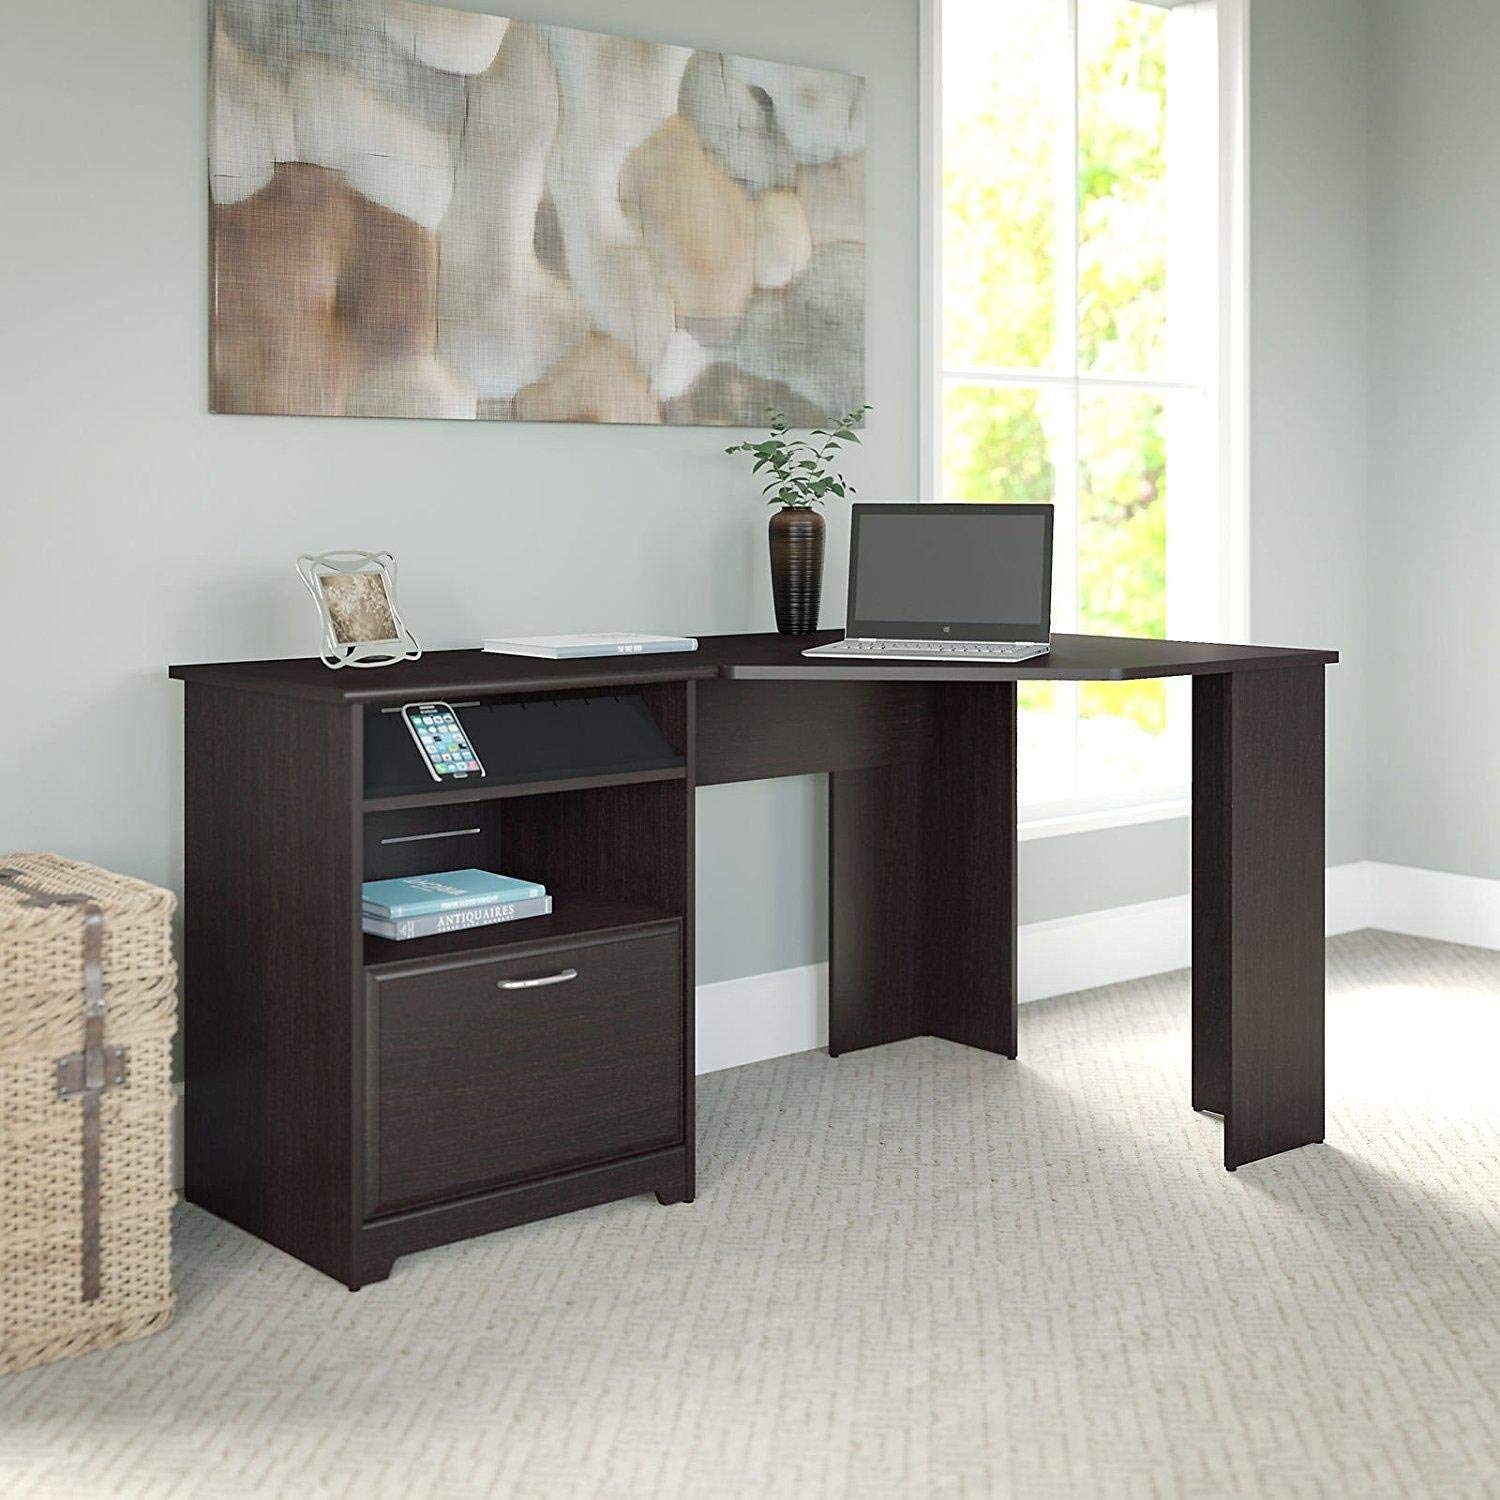 Get Quotations Dark Brown Modern Corner Computer Desk Perfect E Saving Contemporary Home Office Or College Student